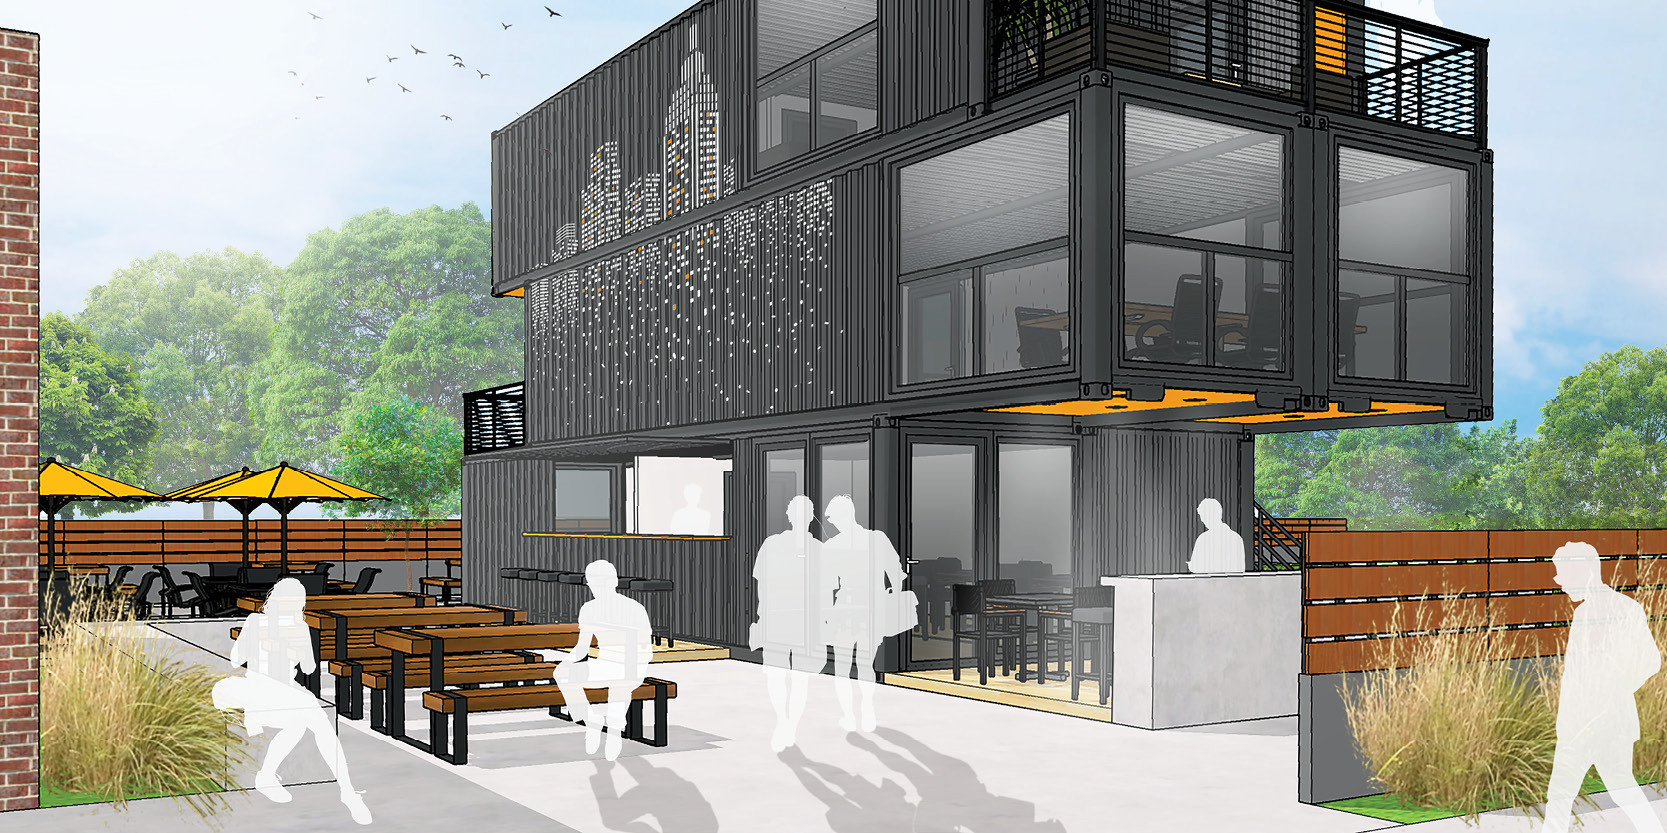 _________ East Main Street Shipping Container Concept